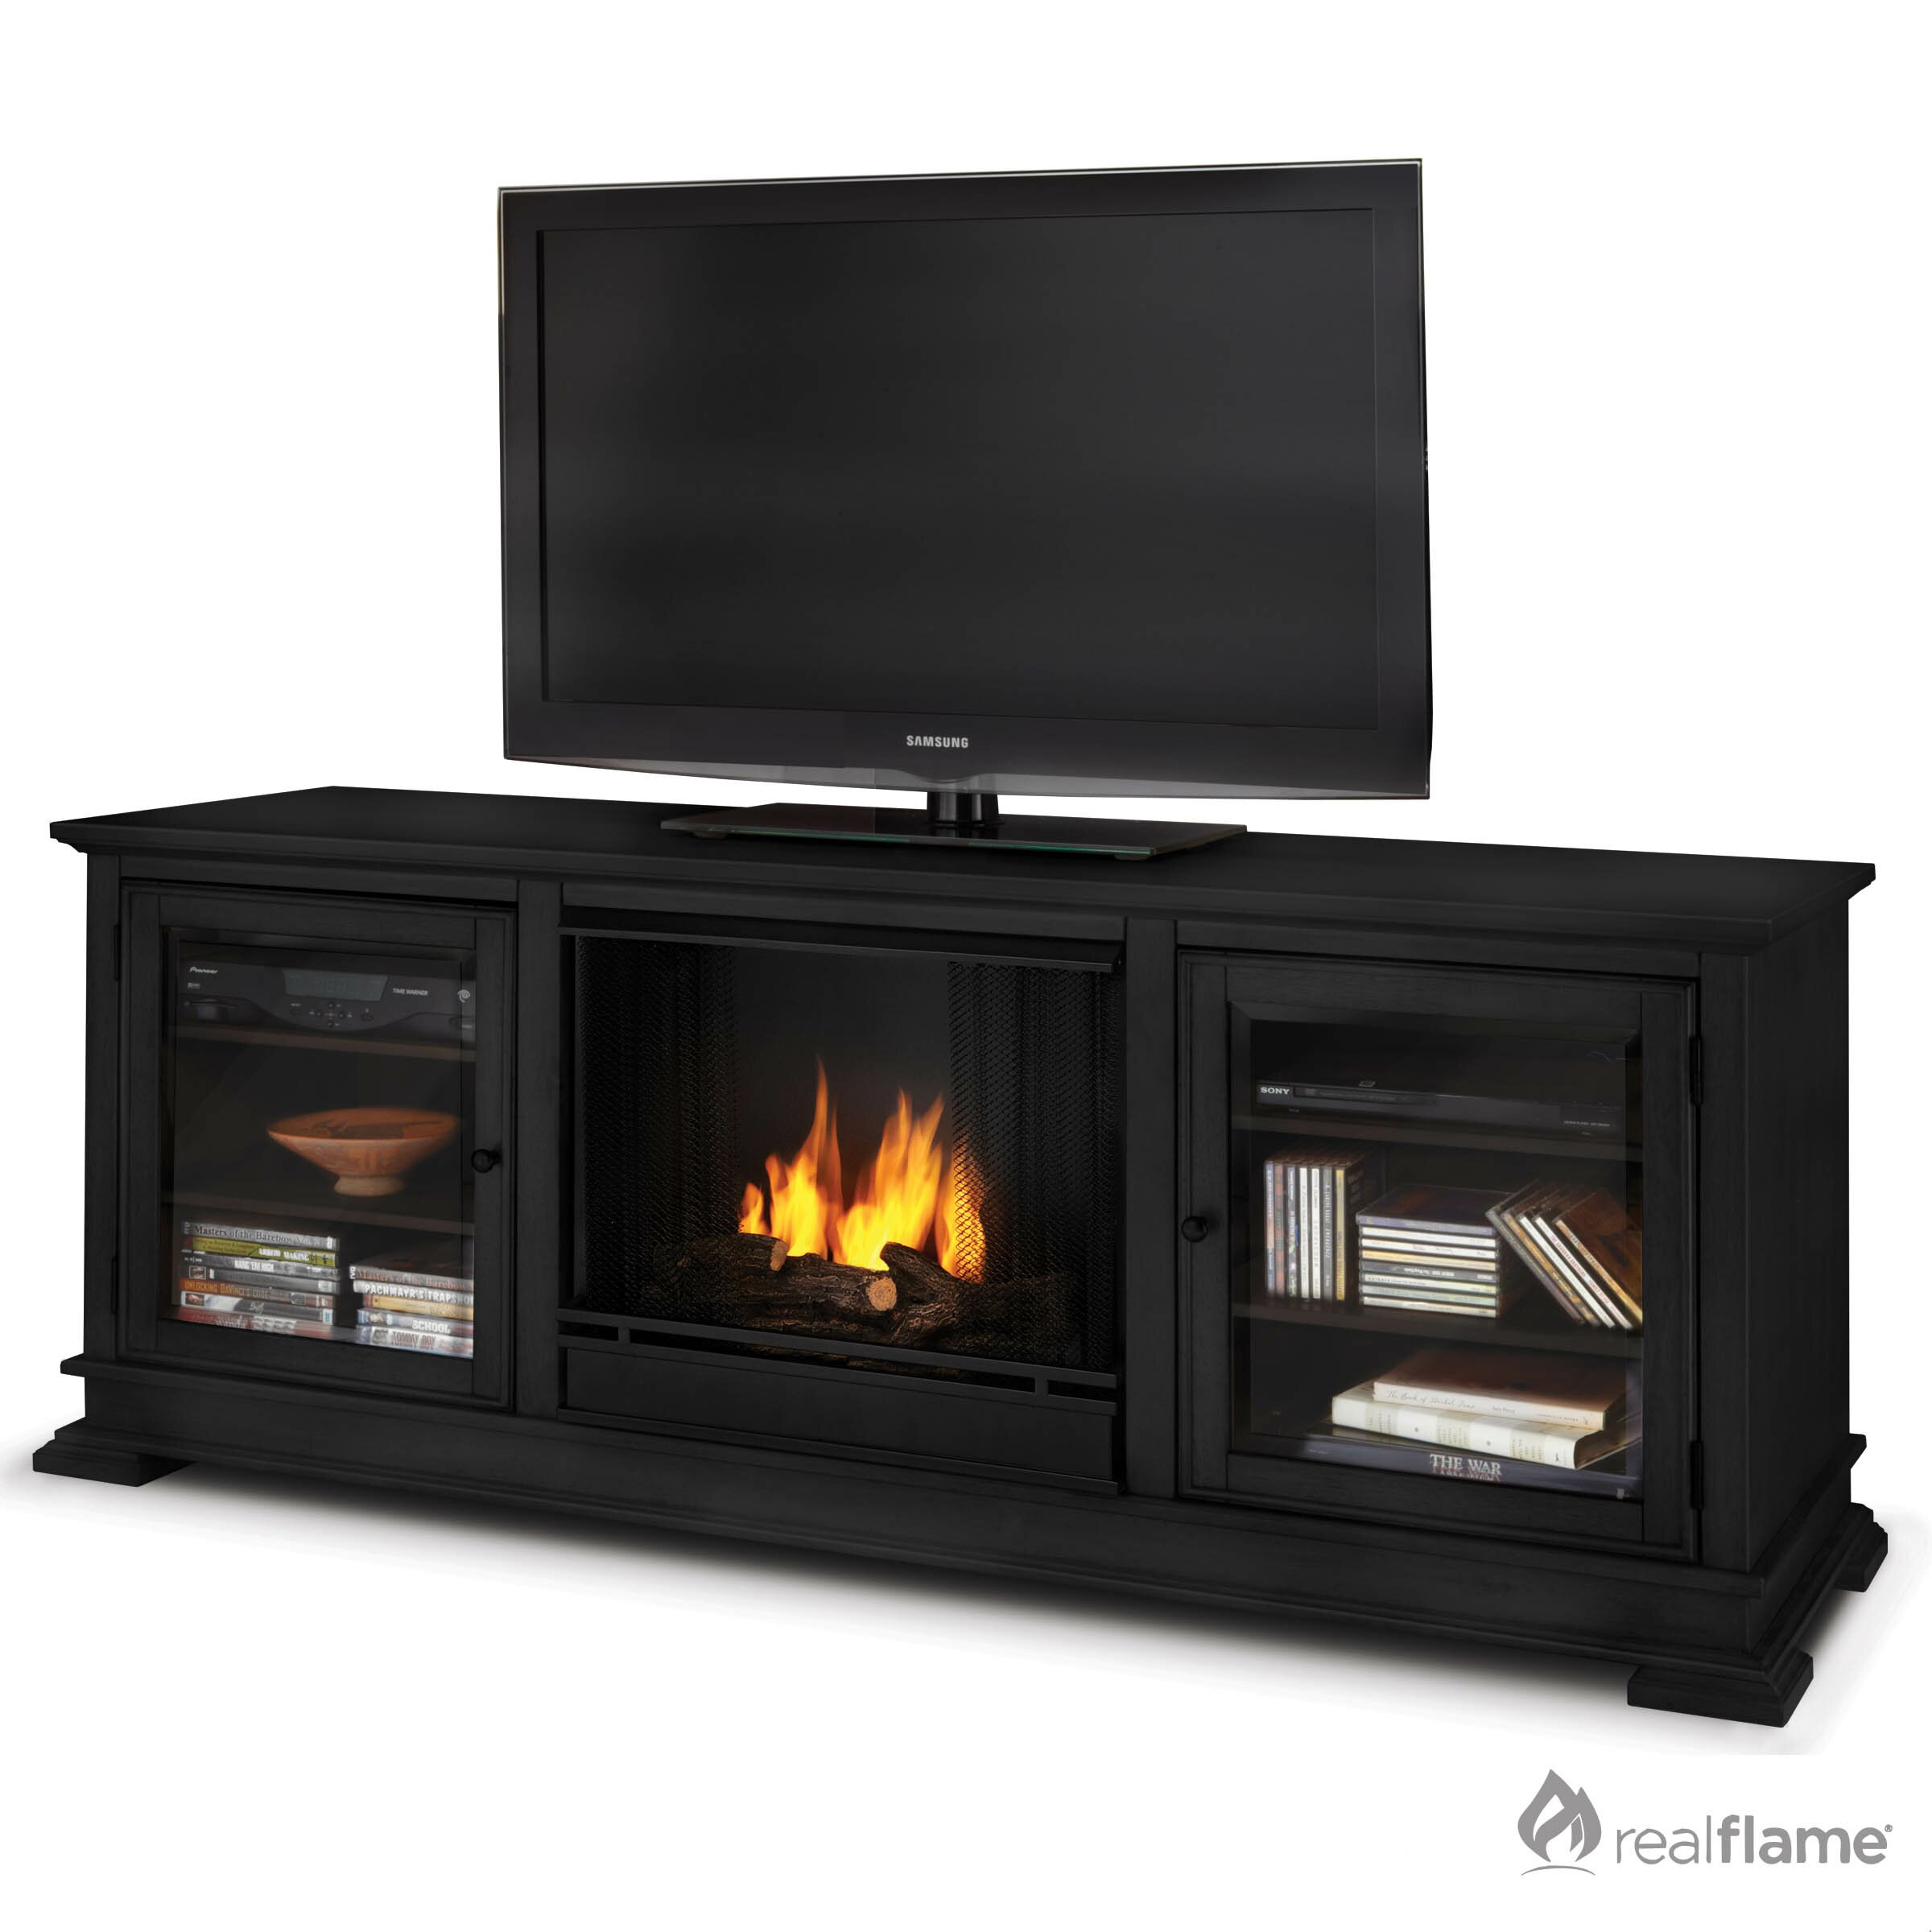 Real Flame Hudson Ventless Tv Stand With Fireplace Reviews Wayfair